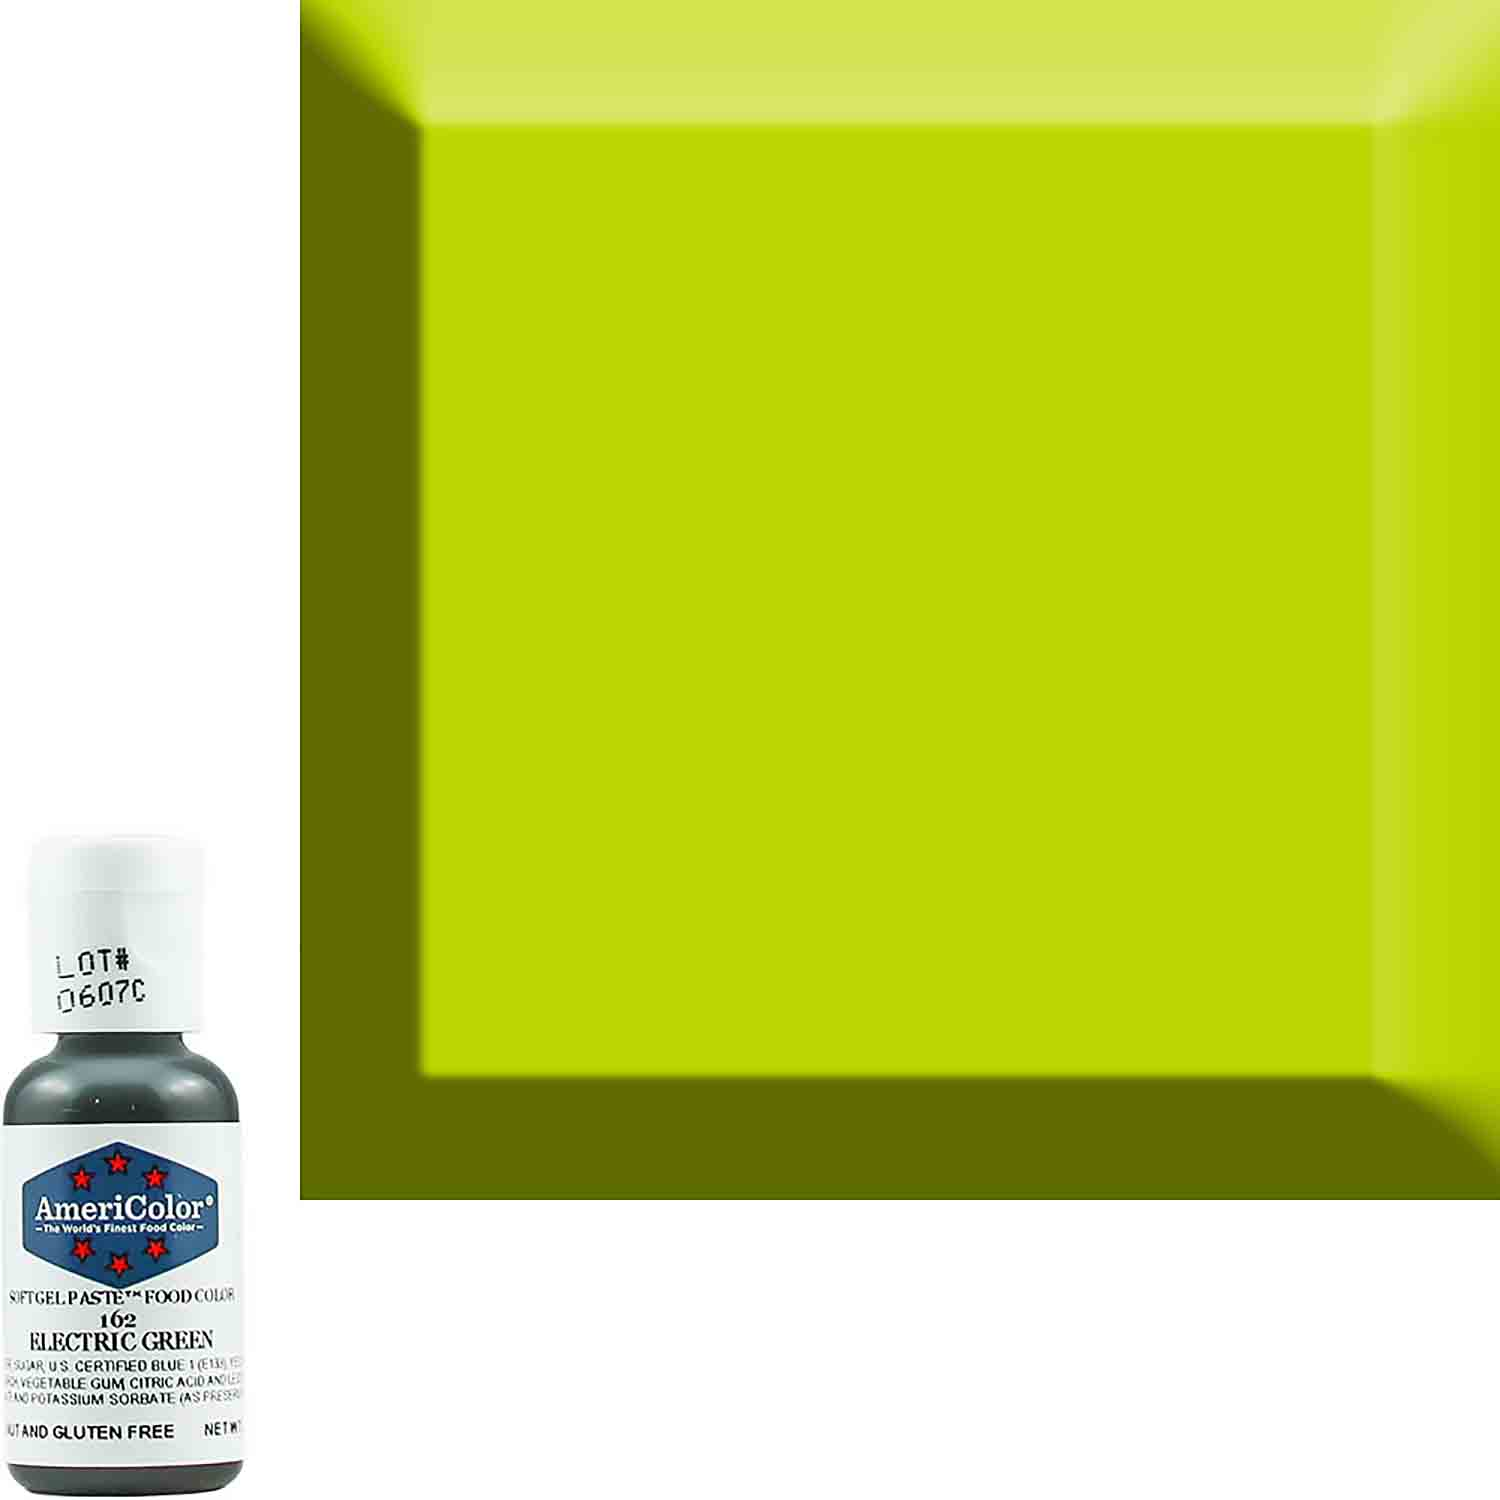 Neon/Electric Green AmeriColor® Soft Gel Paste™ Food Color